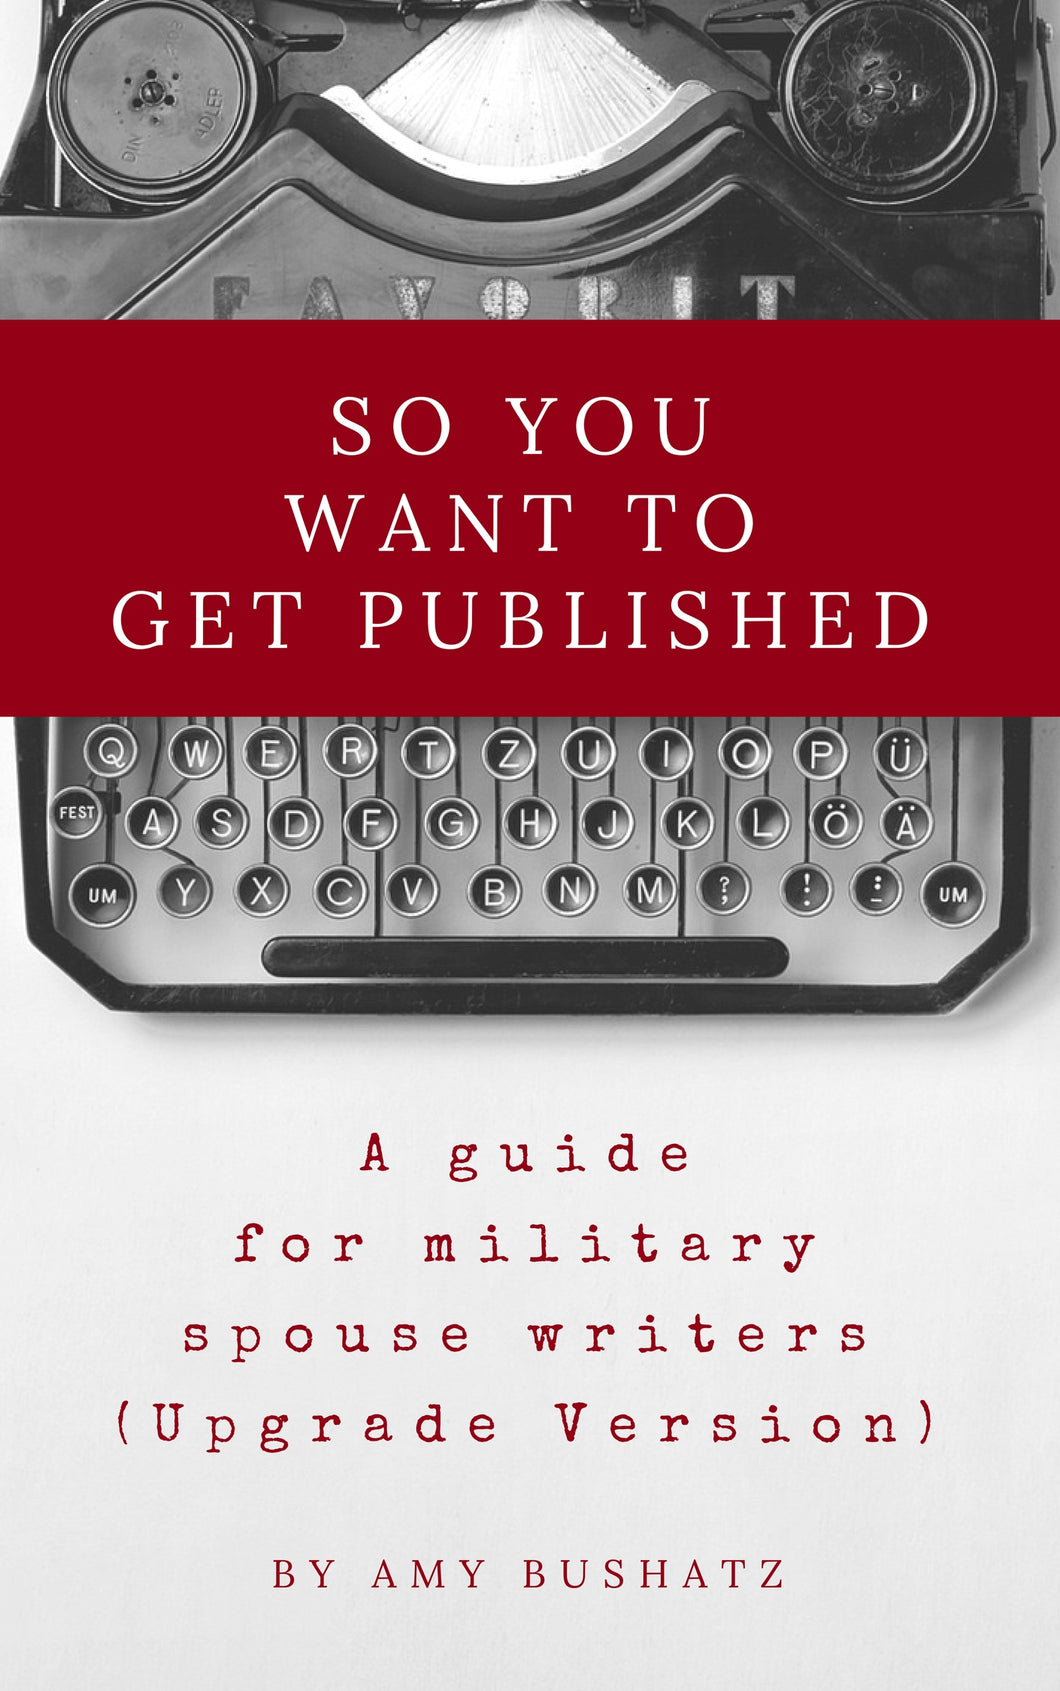 Ebook: So You Want to Get Published (Upgrade)